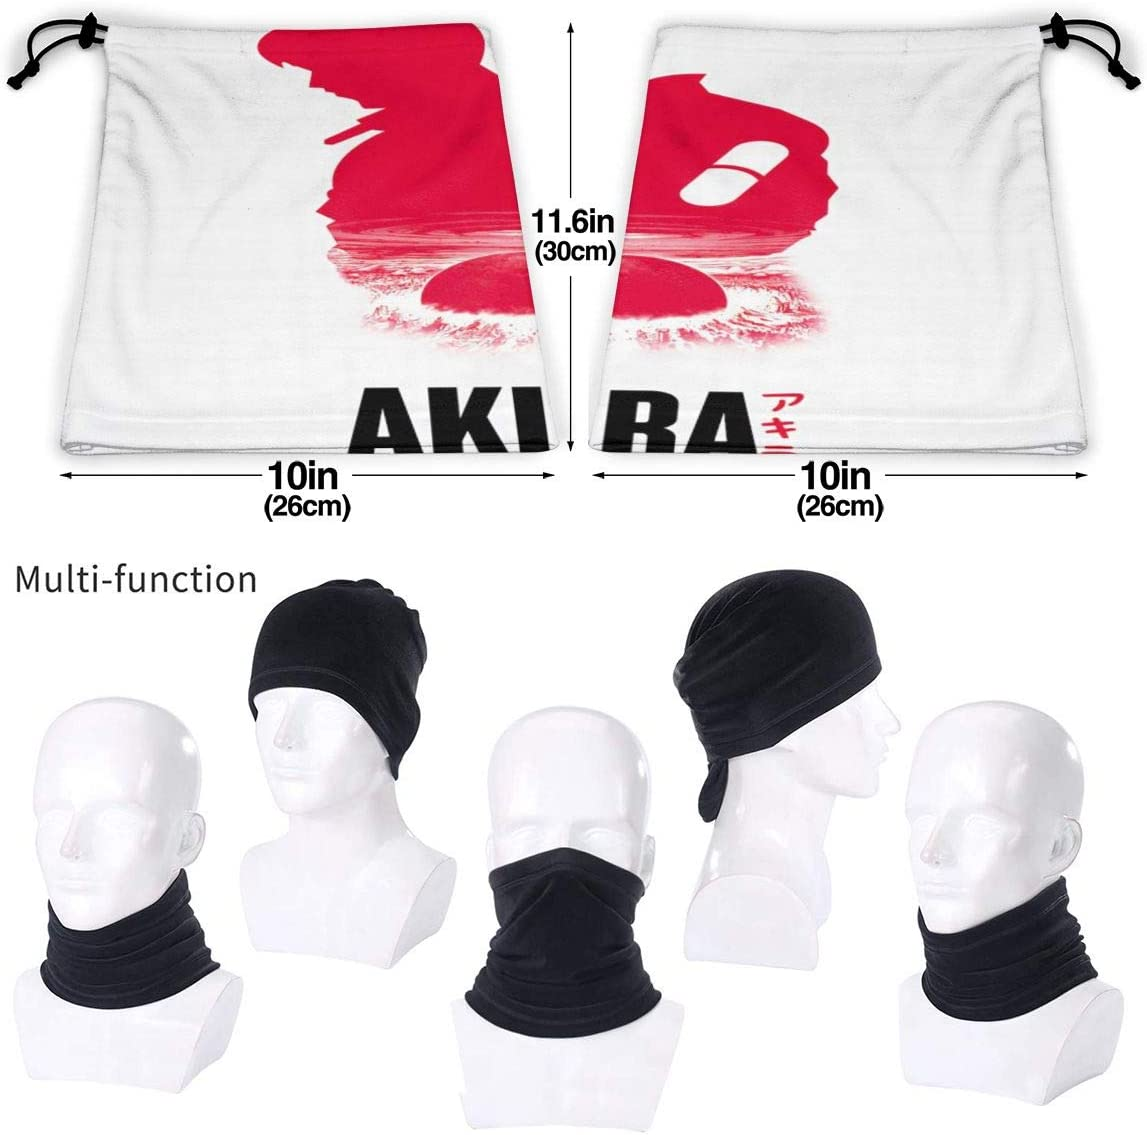 Akira Unisex Comfortable And Breathable Fashion Scarf Face Tube Neck Scarf Neck Warm Scarf